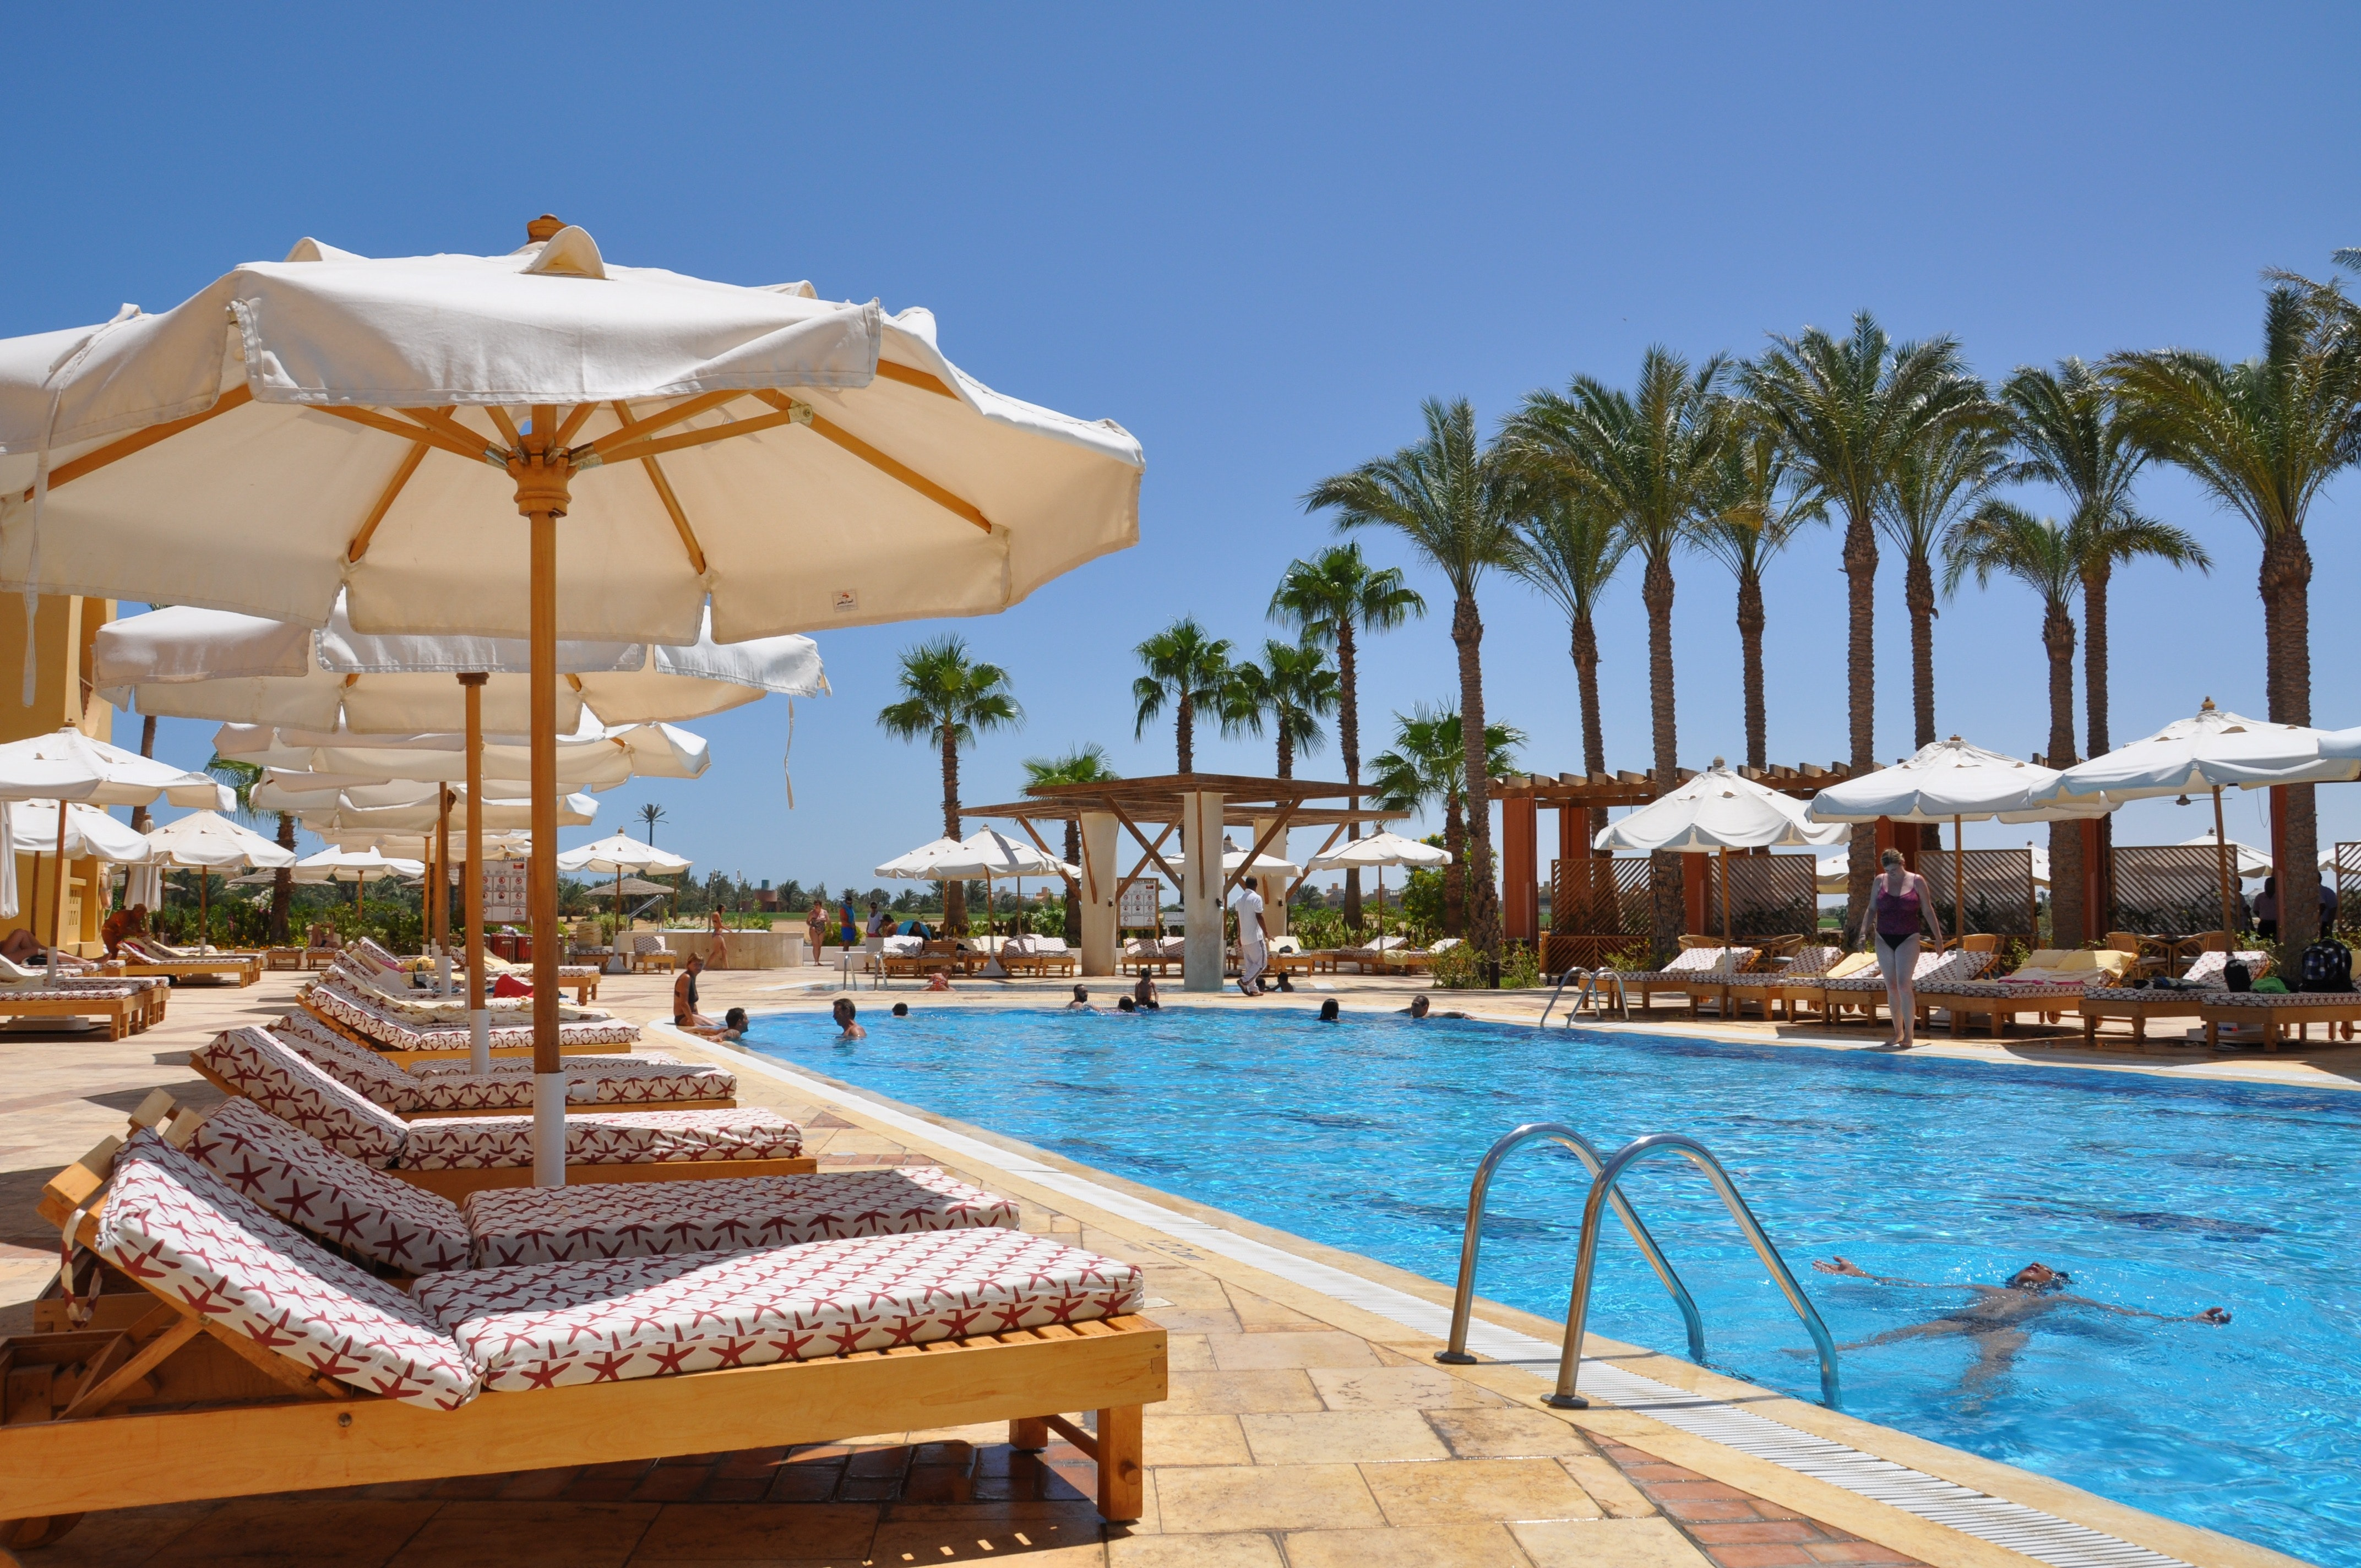 Free stock photo of holiday parasol pool for Holiday inn with swimming pool